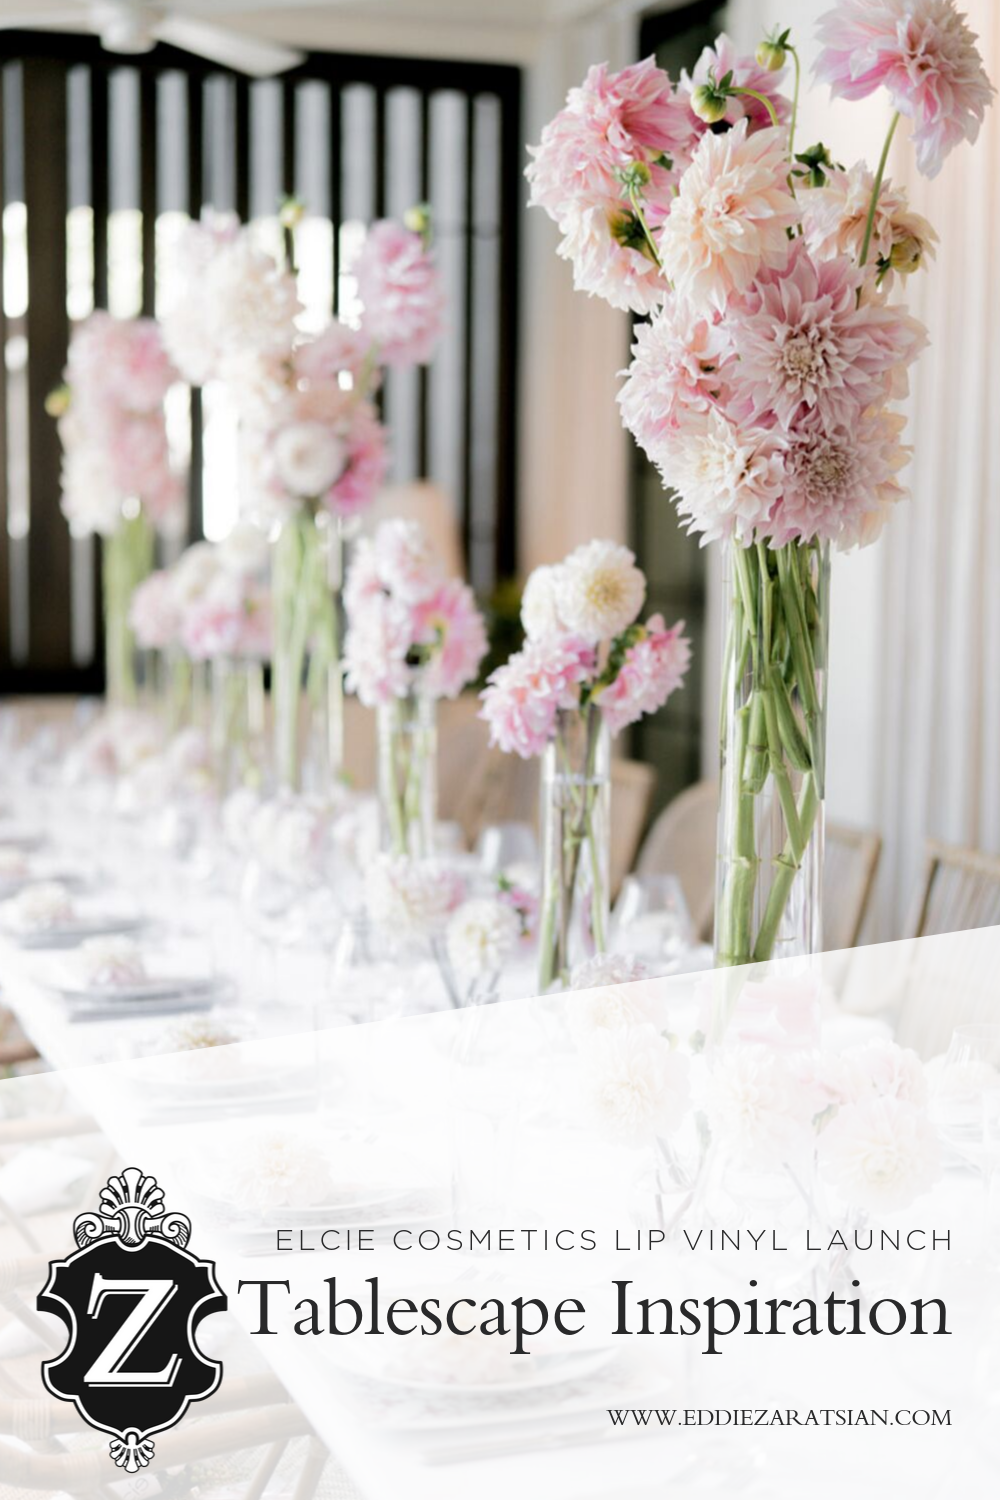 Elcie Cosmetics Lip Vinyl Launch Party Tablescape Inspiration - Lip Vinyl Launch Party. Lilit Caradanian, founder of Elcie Cosmetics, launched her amazing new line of Lip Vinyl earlier this month and called on Eddie Zaratsian to design her launch party. Inspired by the lip collection's soft pink color palette, Eddie created a delectable looking lunch event where he added delicate pink floral treatments to the yummy treats Ladybugs Catering and Events had laid out for the guests.